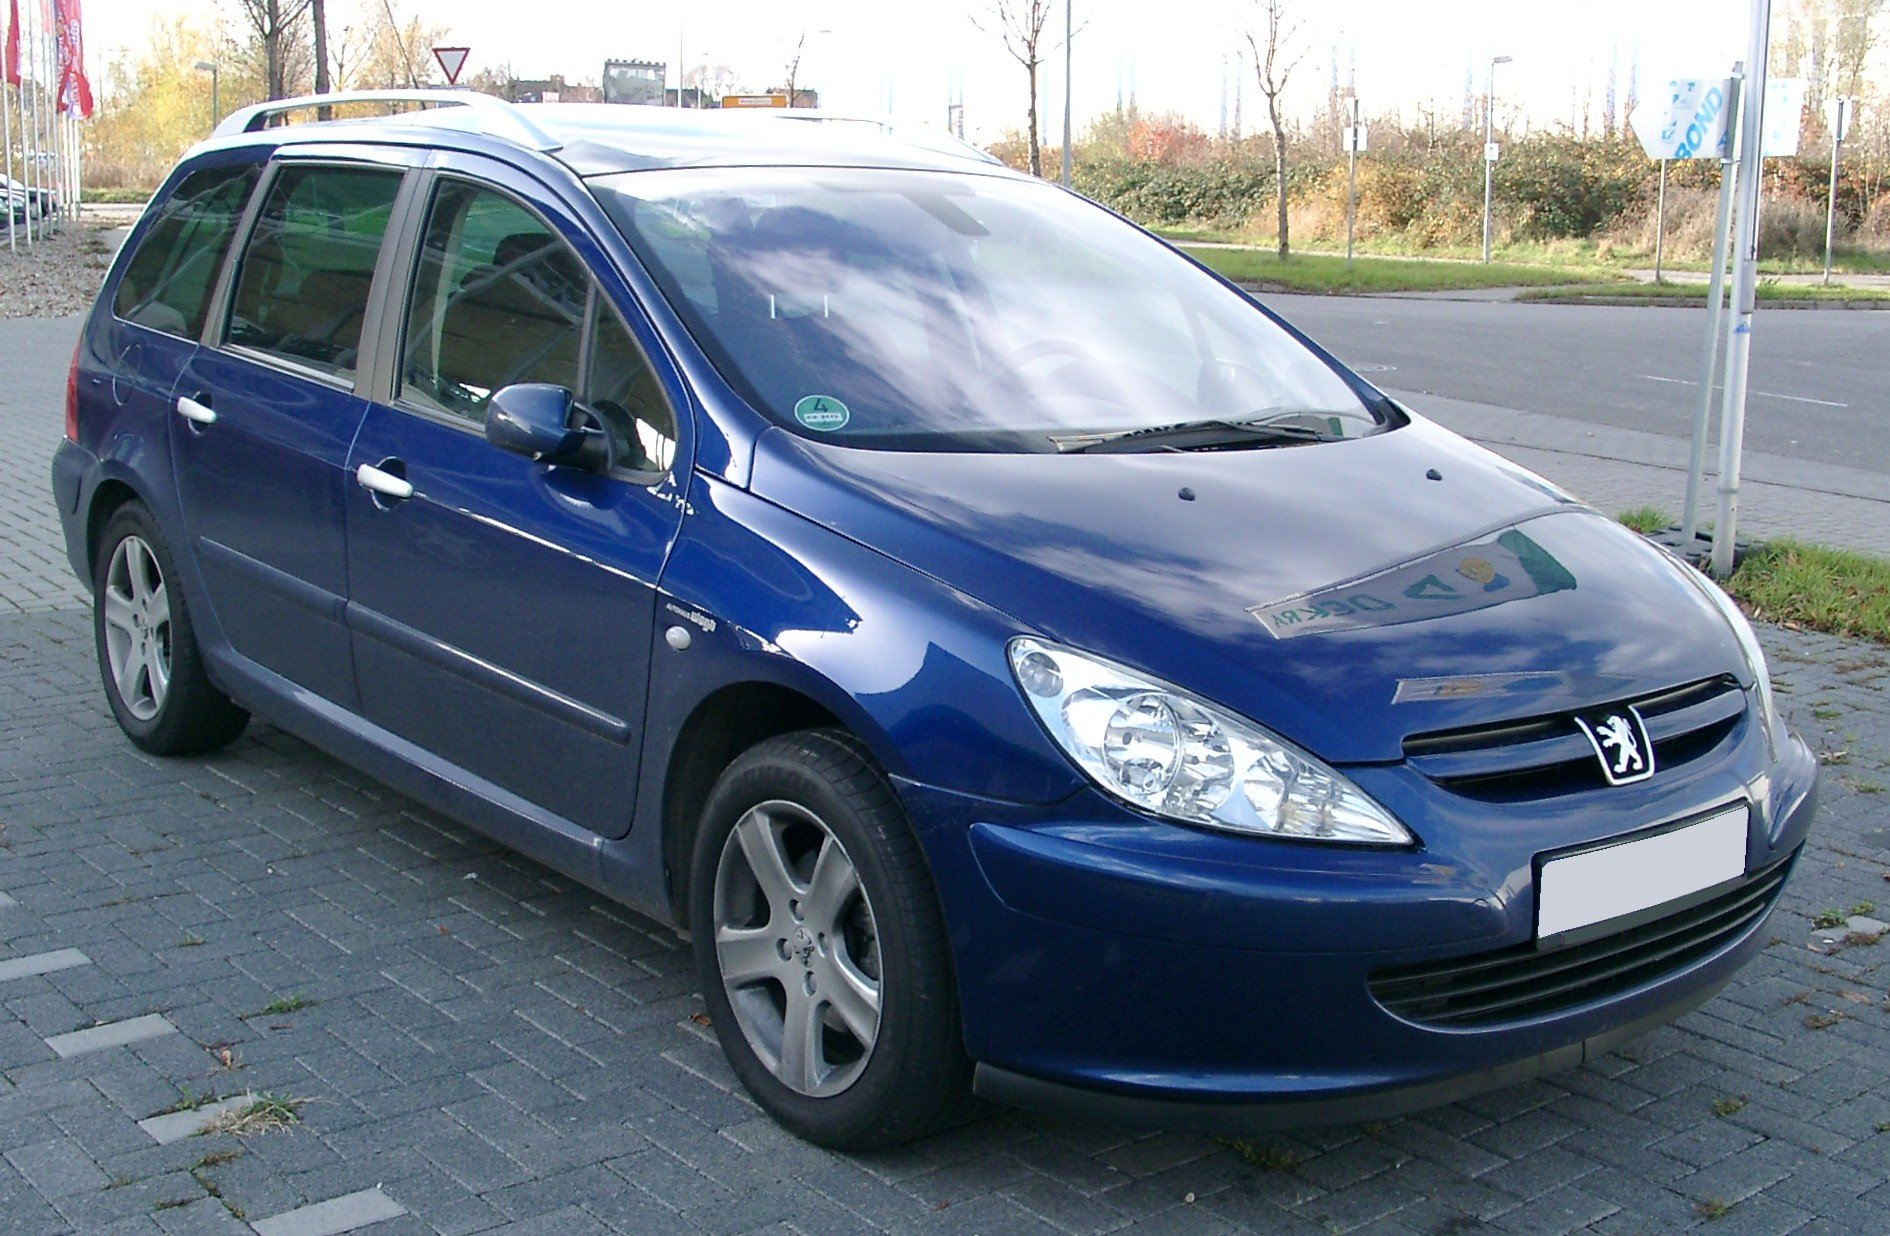 peugeot 307 station wagon 2014 models #13